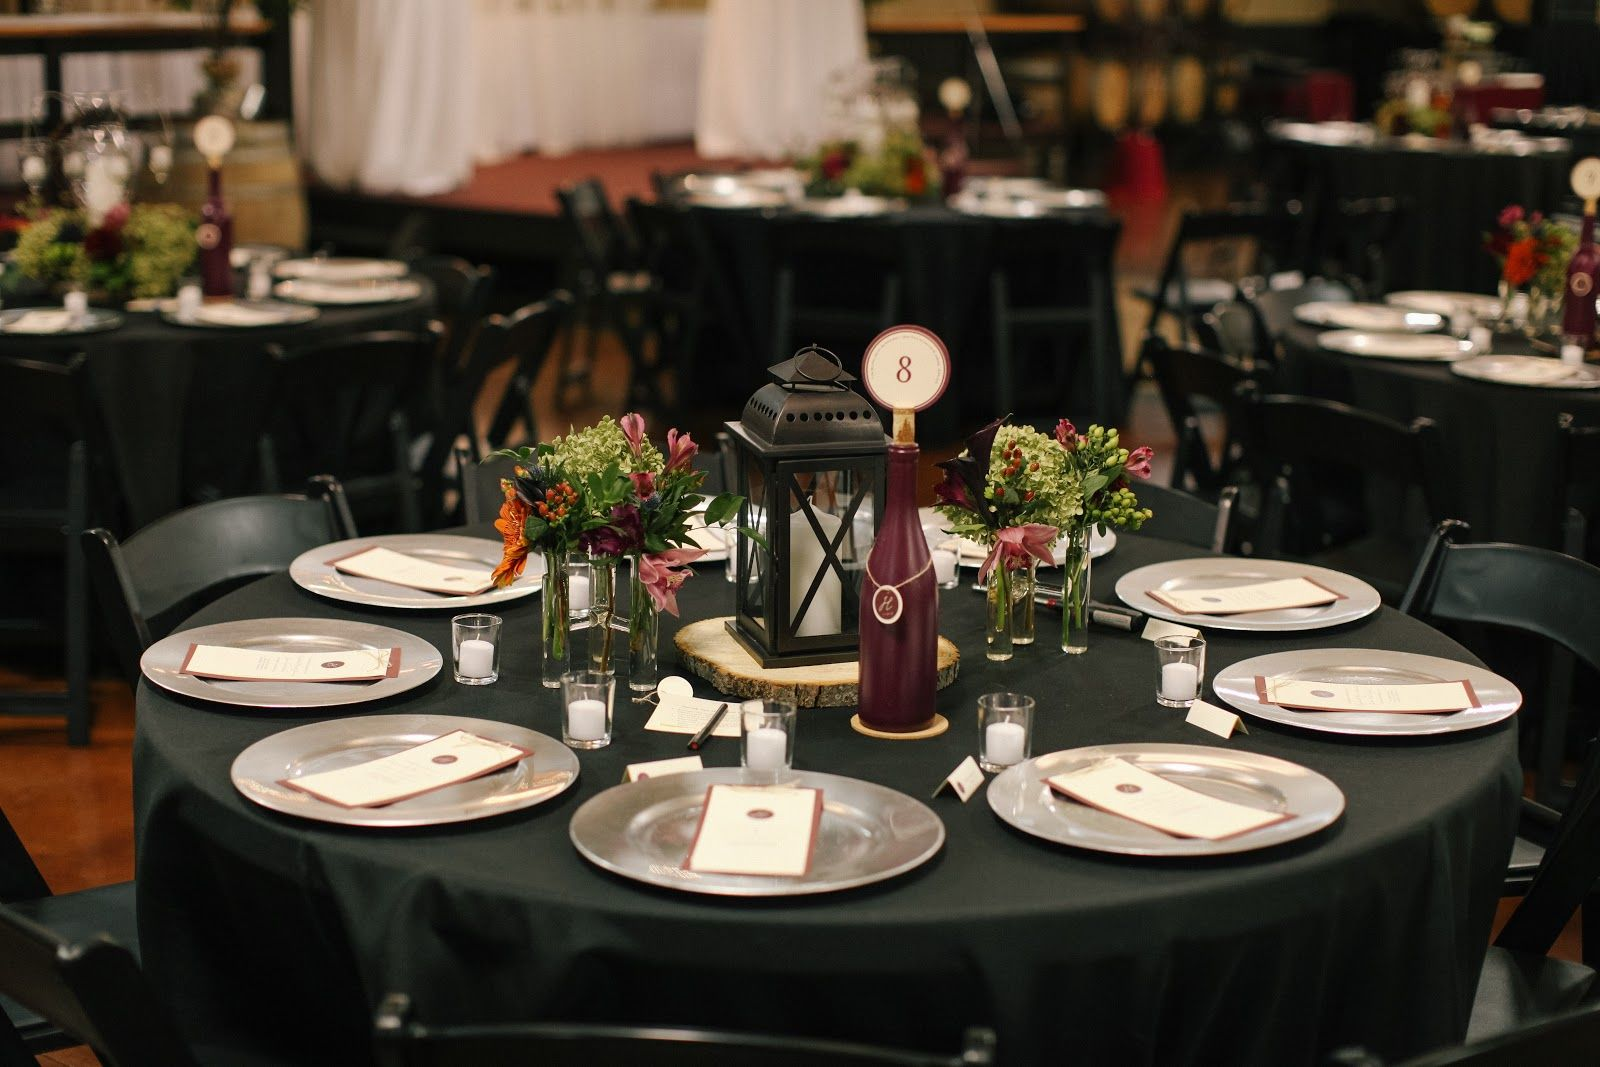 Wedding Decoration Attractive Dining Room Design With Round Tables Combine Black Table Also Flowers And Lantern Plus White Candle